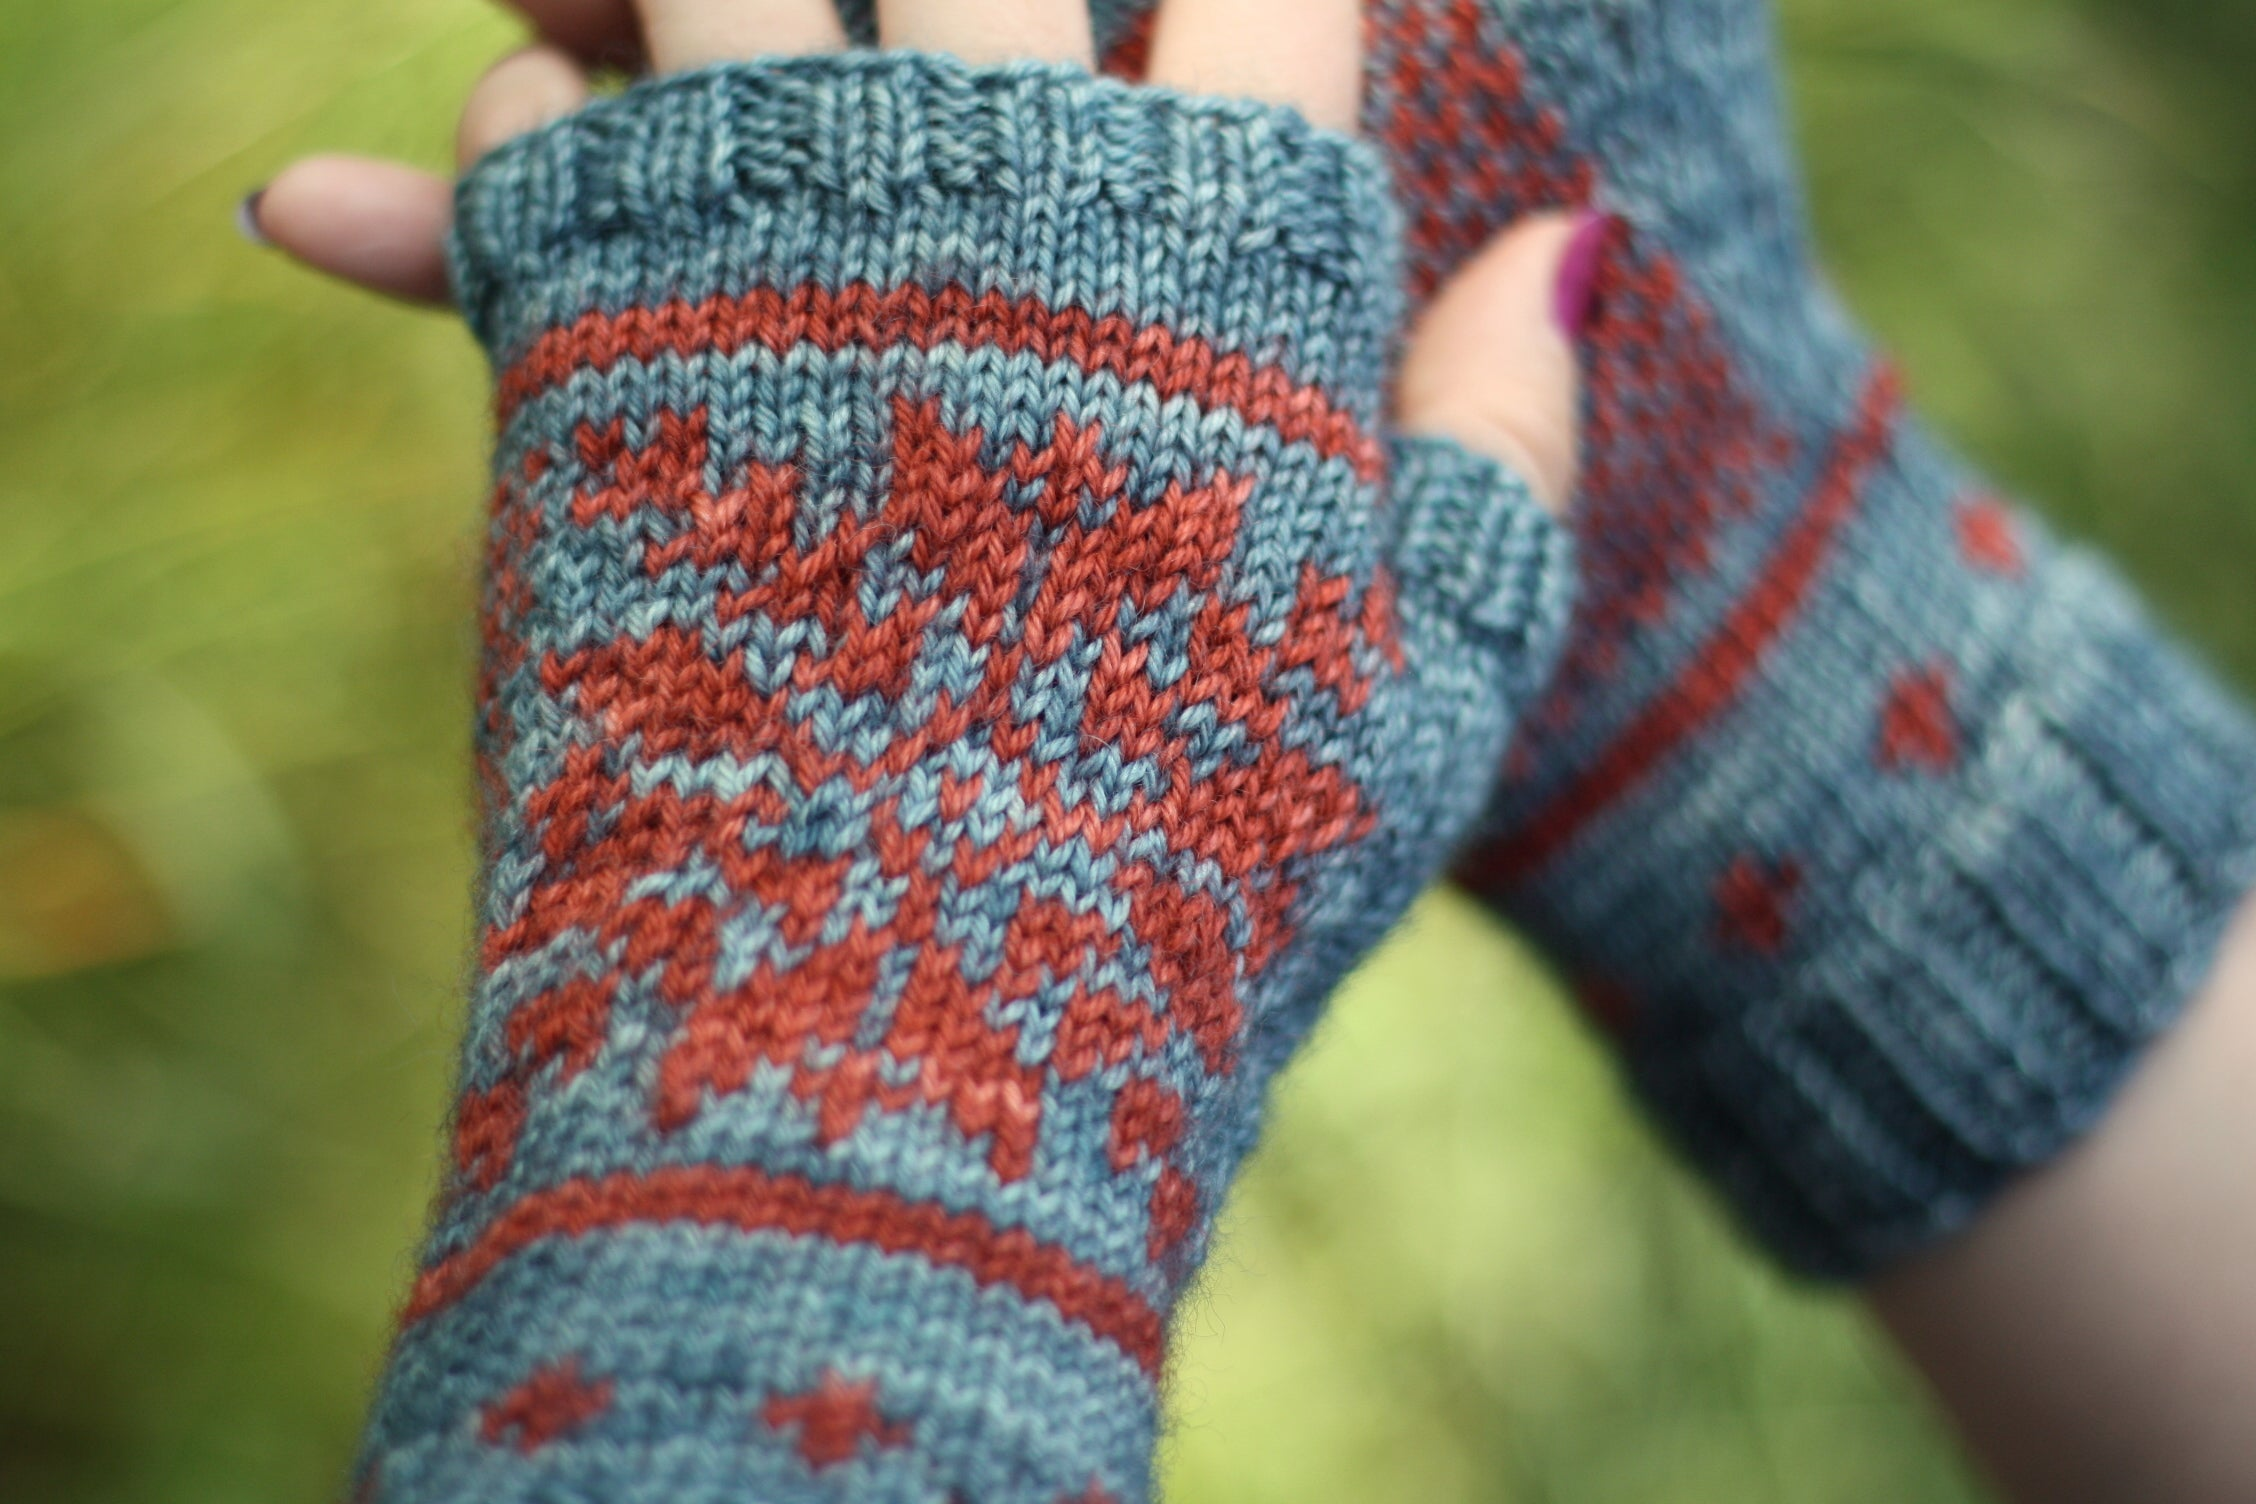 Castle Mitts by Victoria Magnus